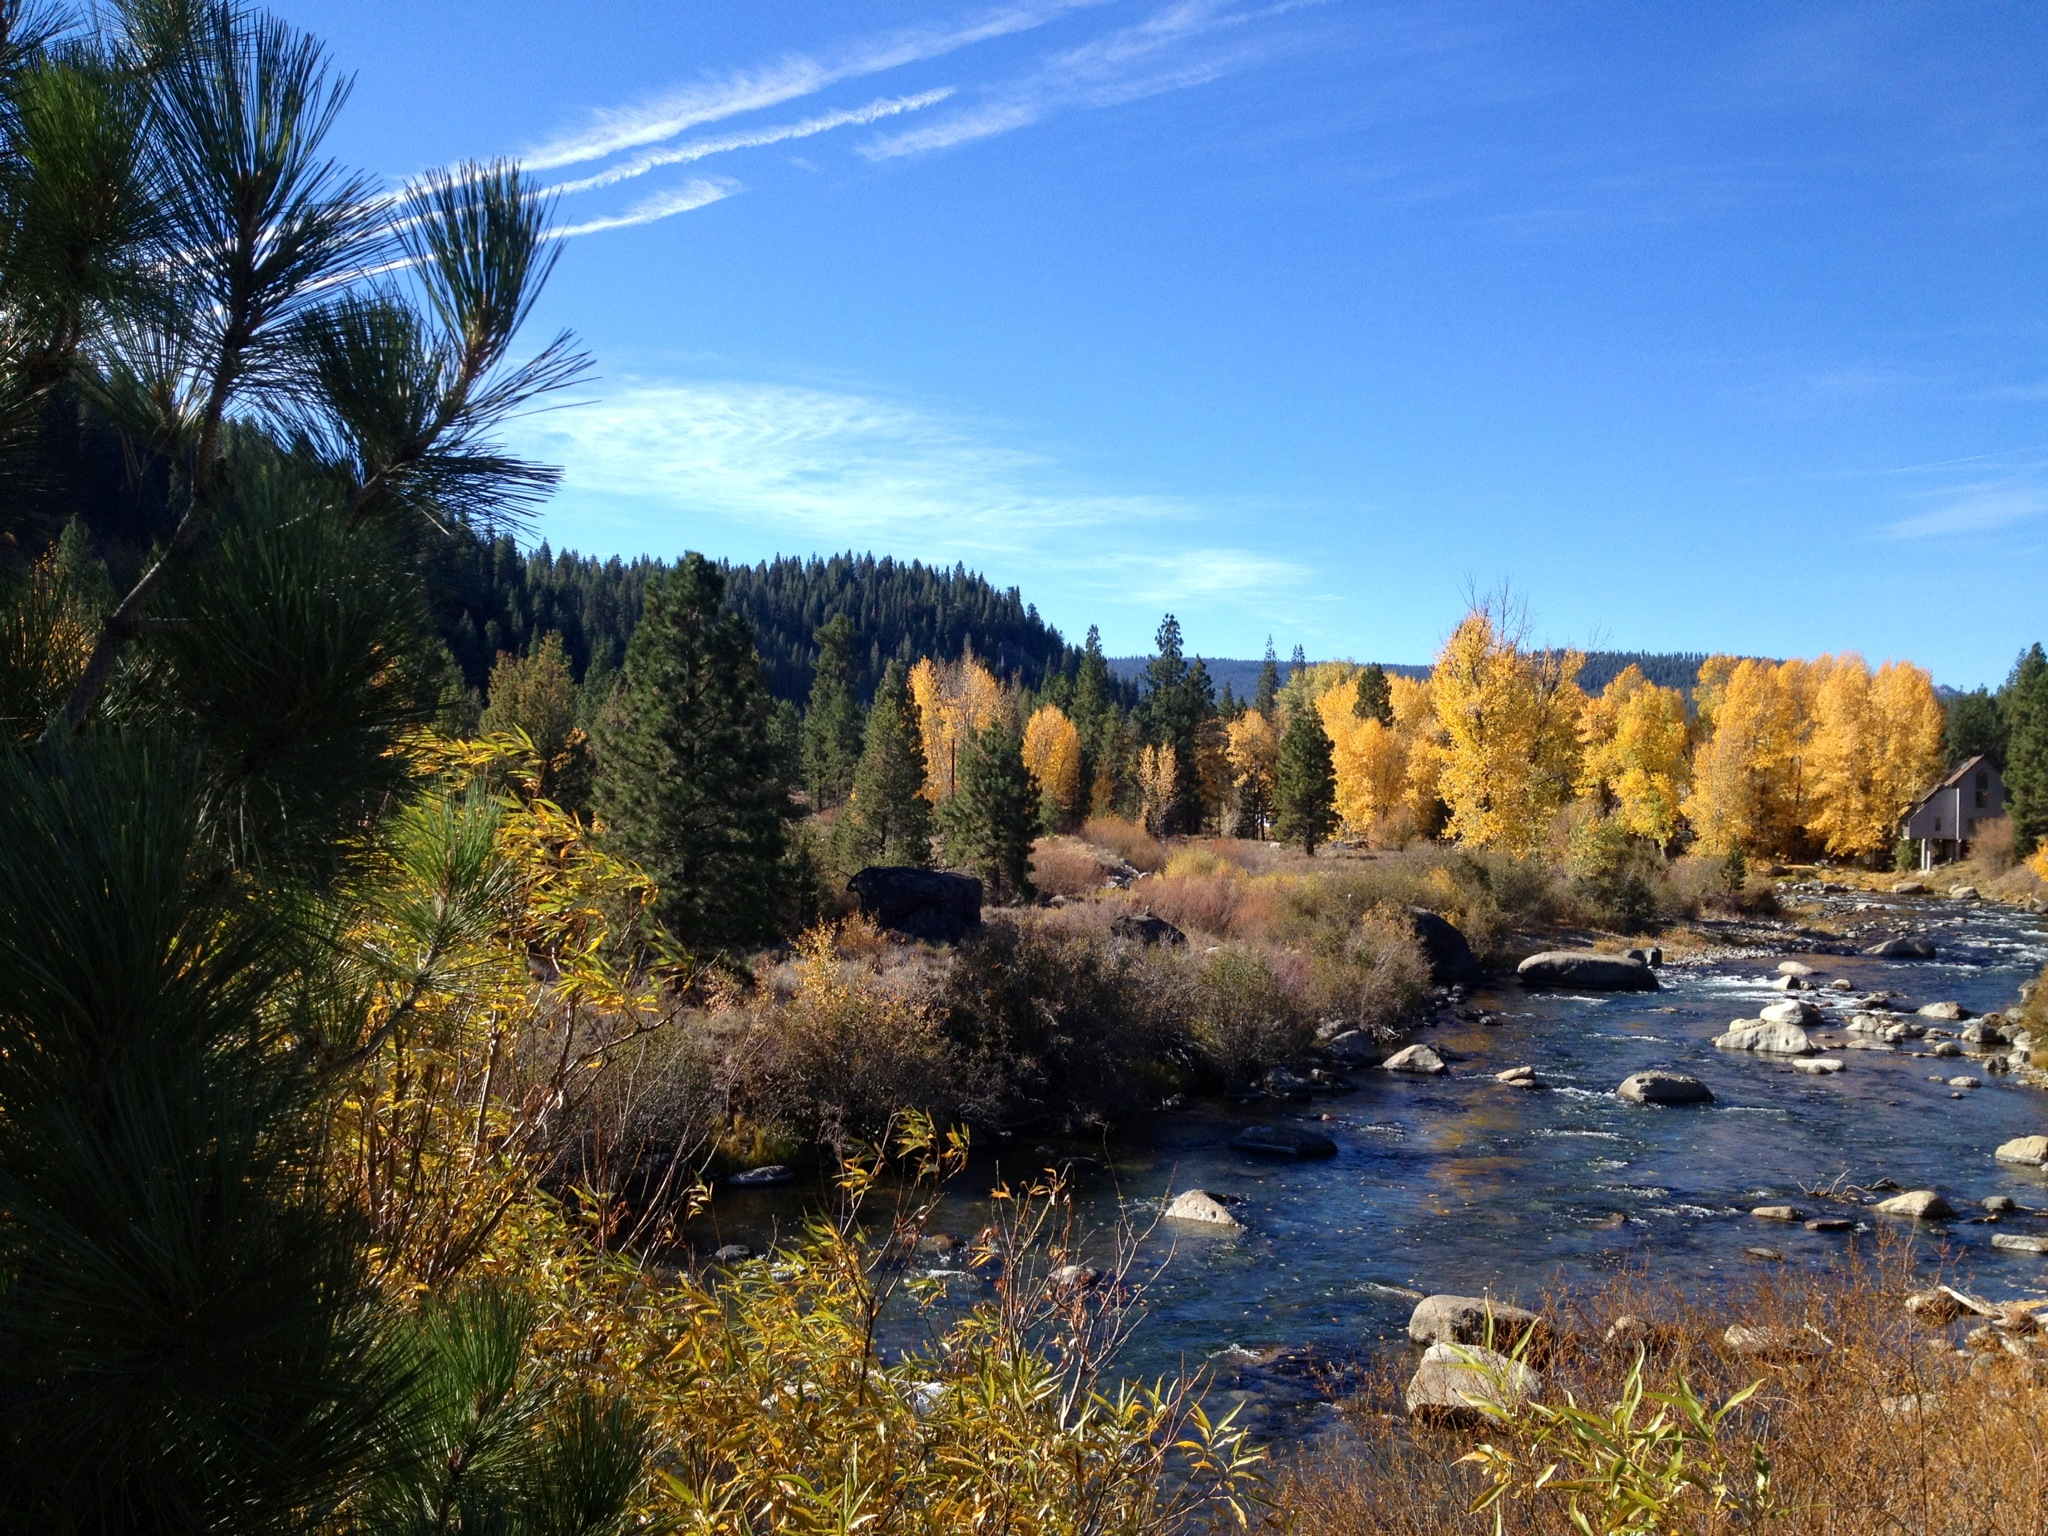 Truckee River: Fall